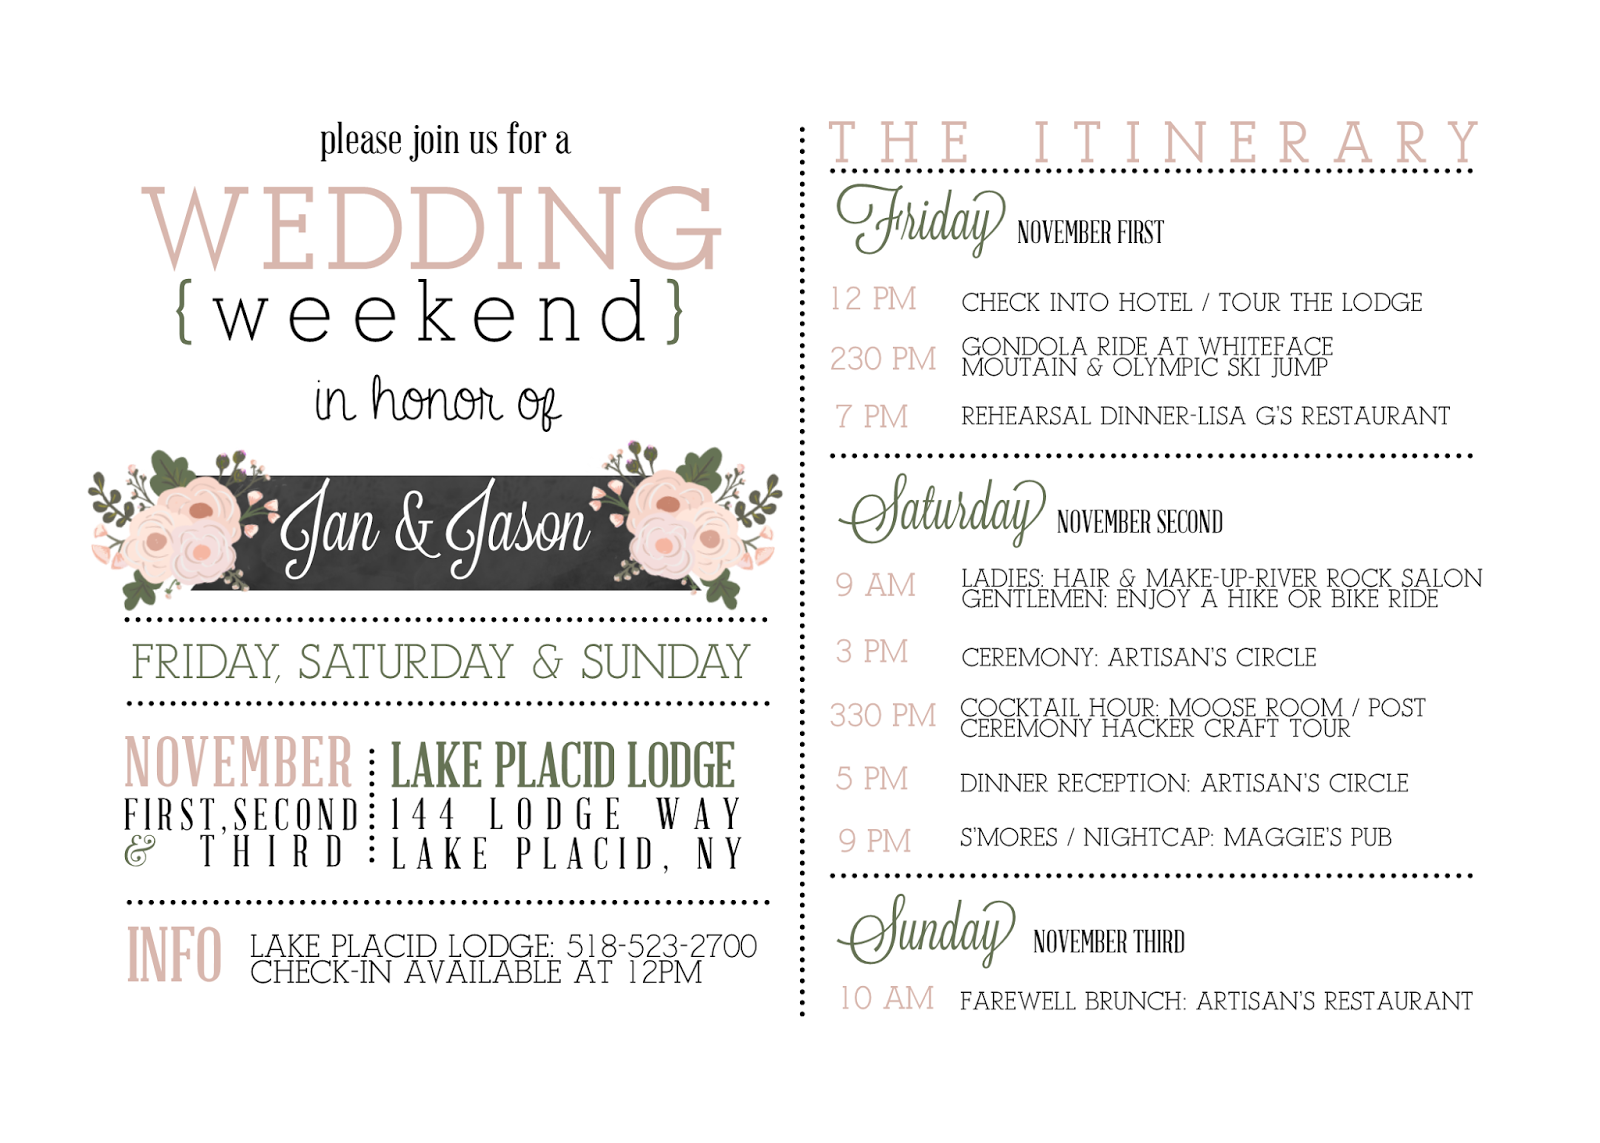 Wedding Weekend Itinerary  Google Search   Pinteres